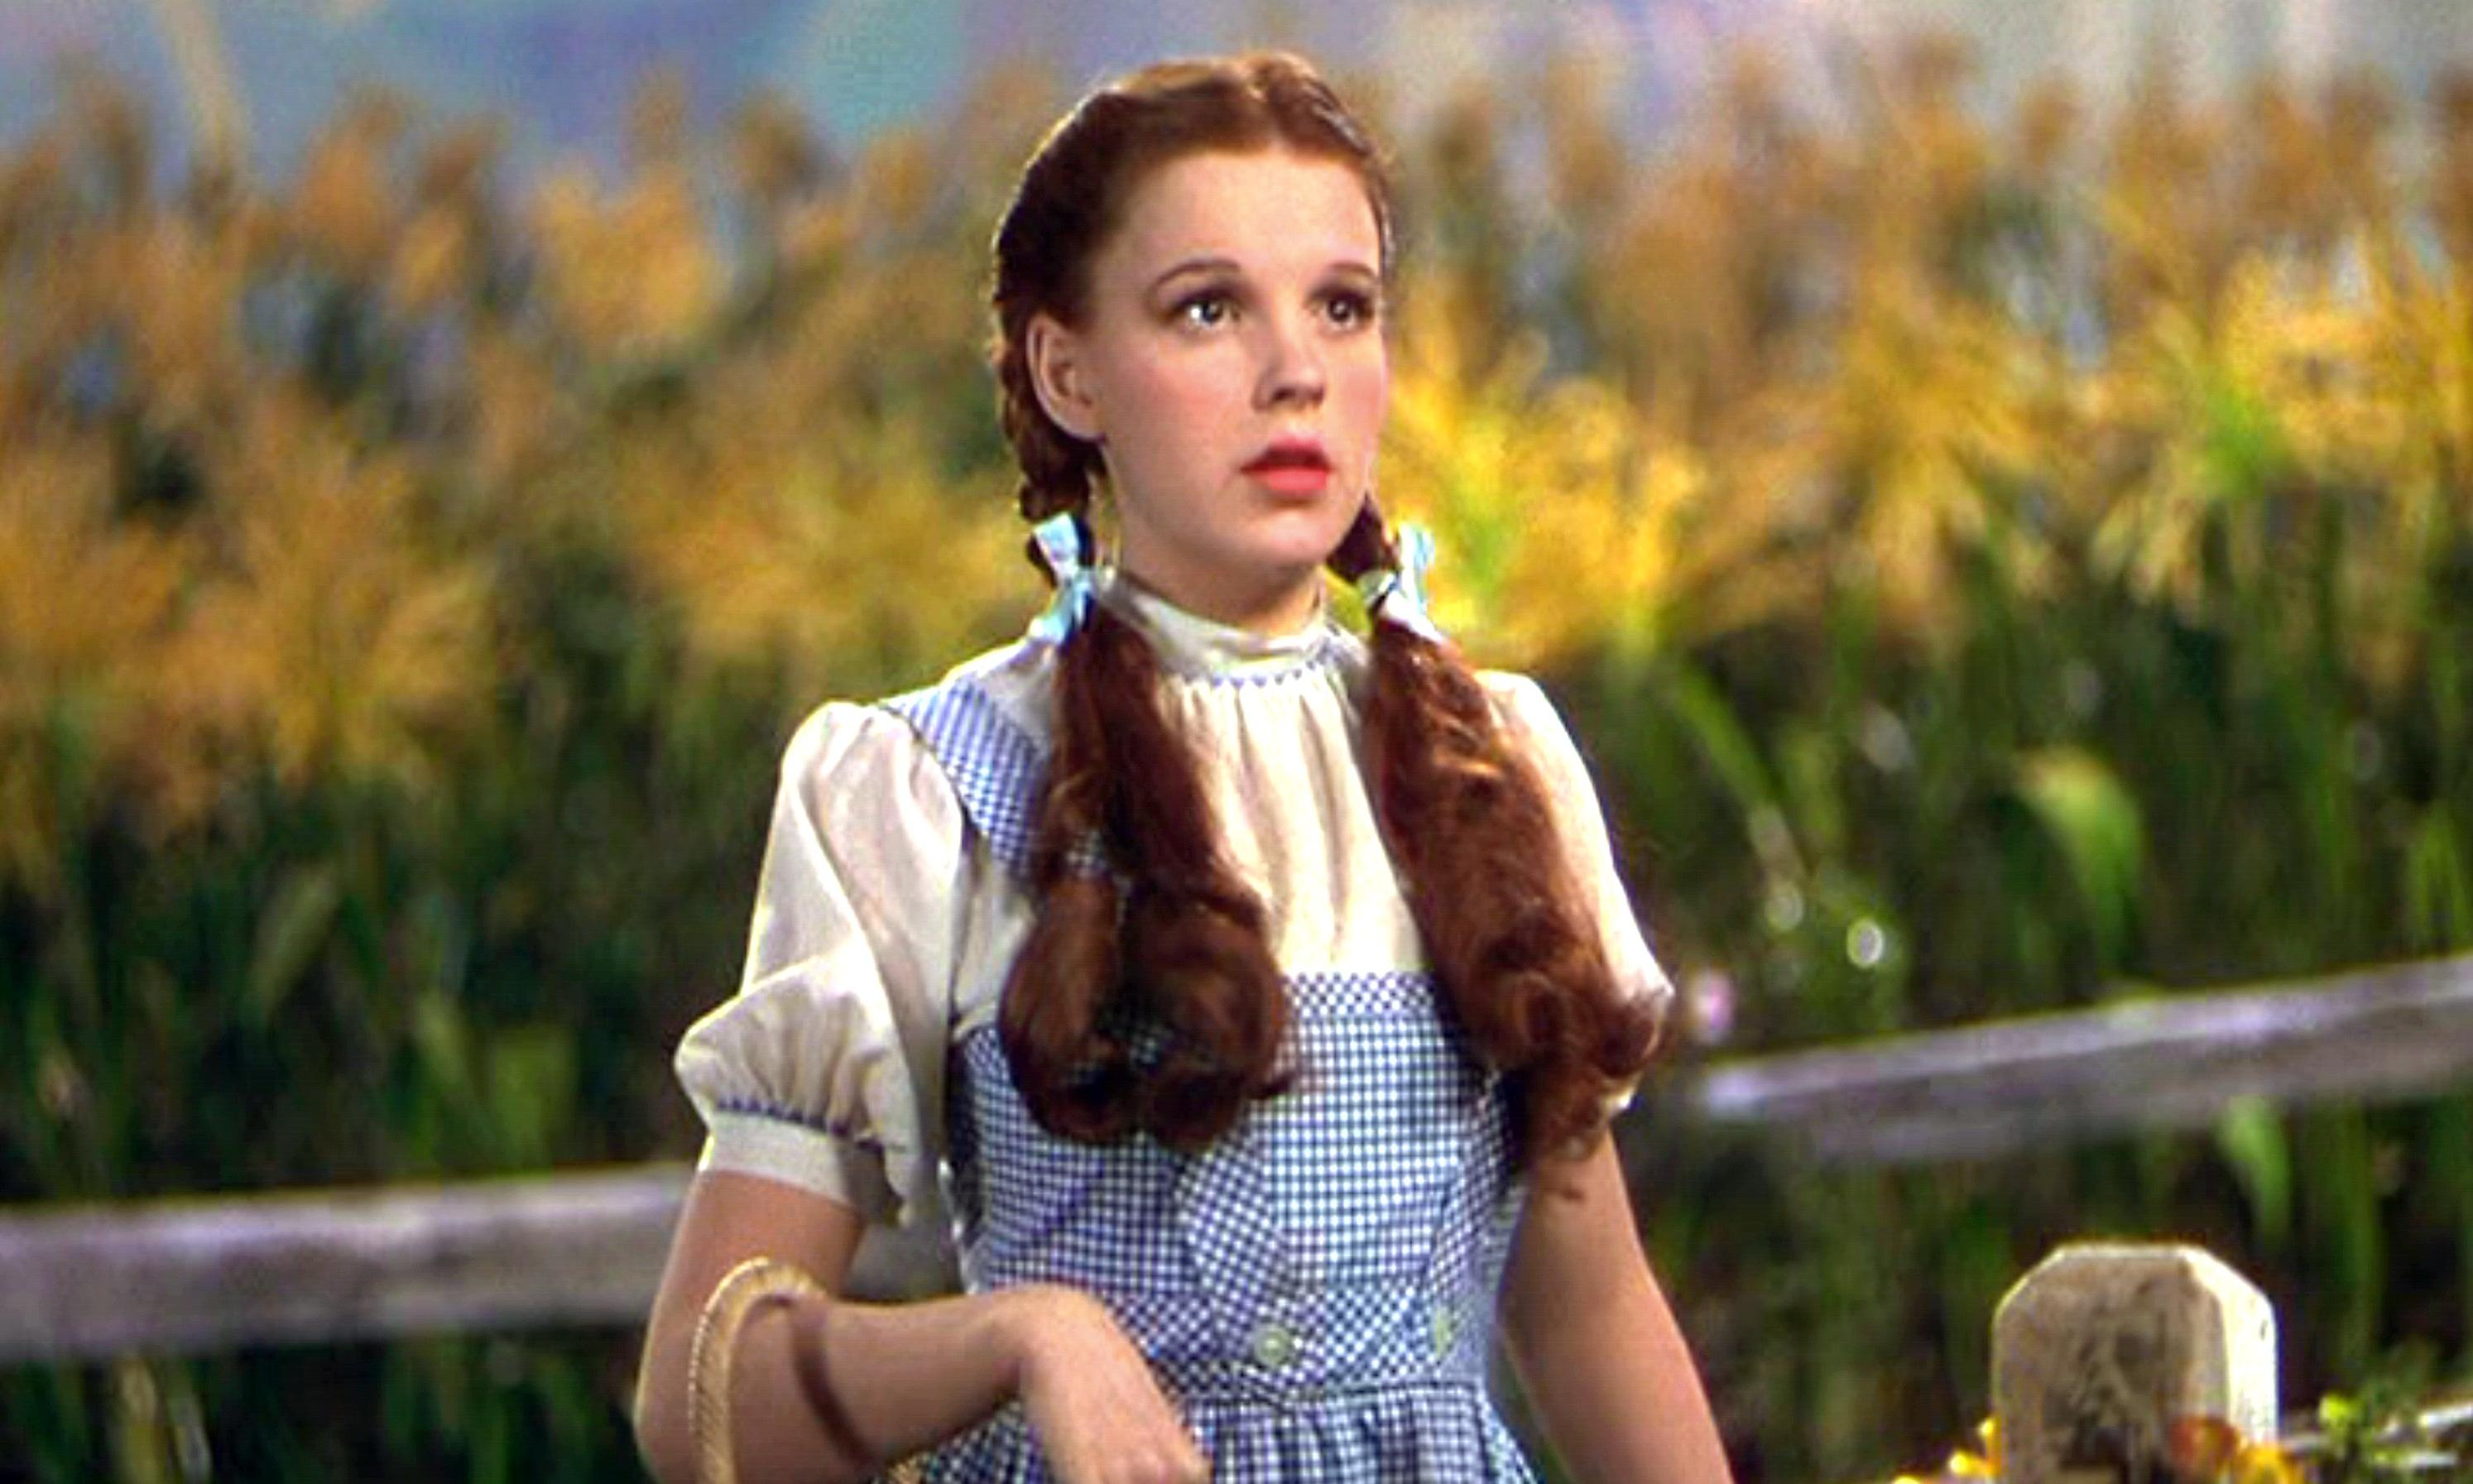 Pulling back the curtain: Wizard of Oz named most influential film